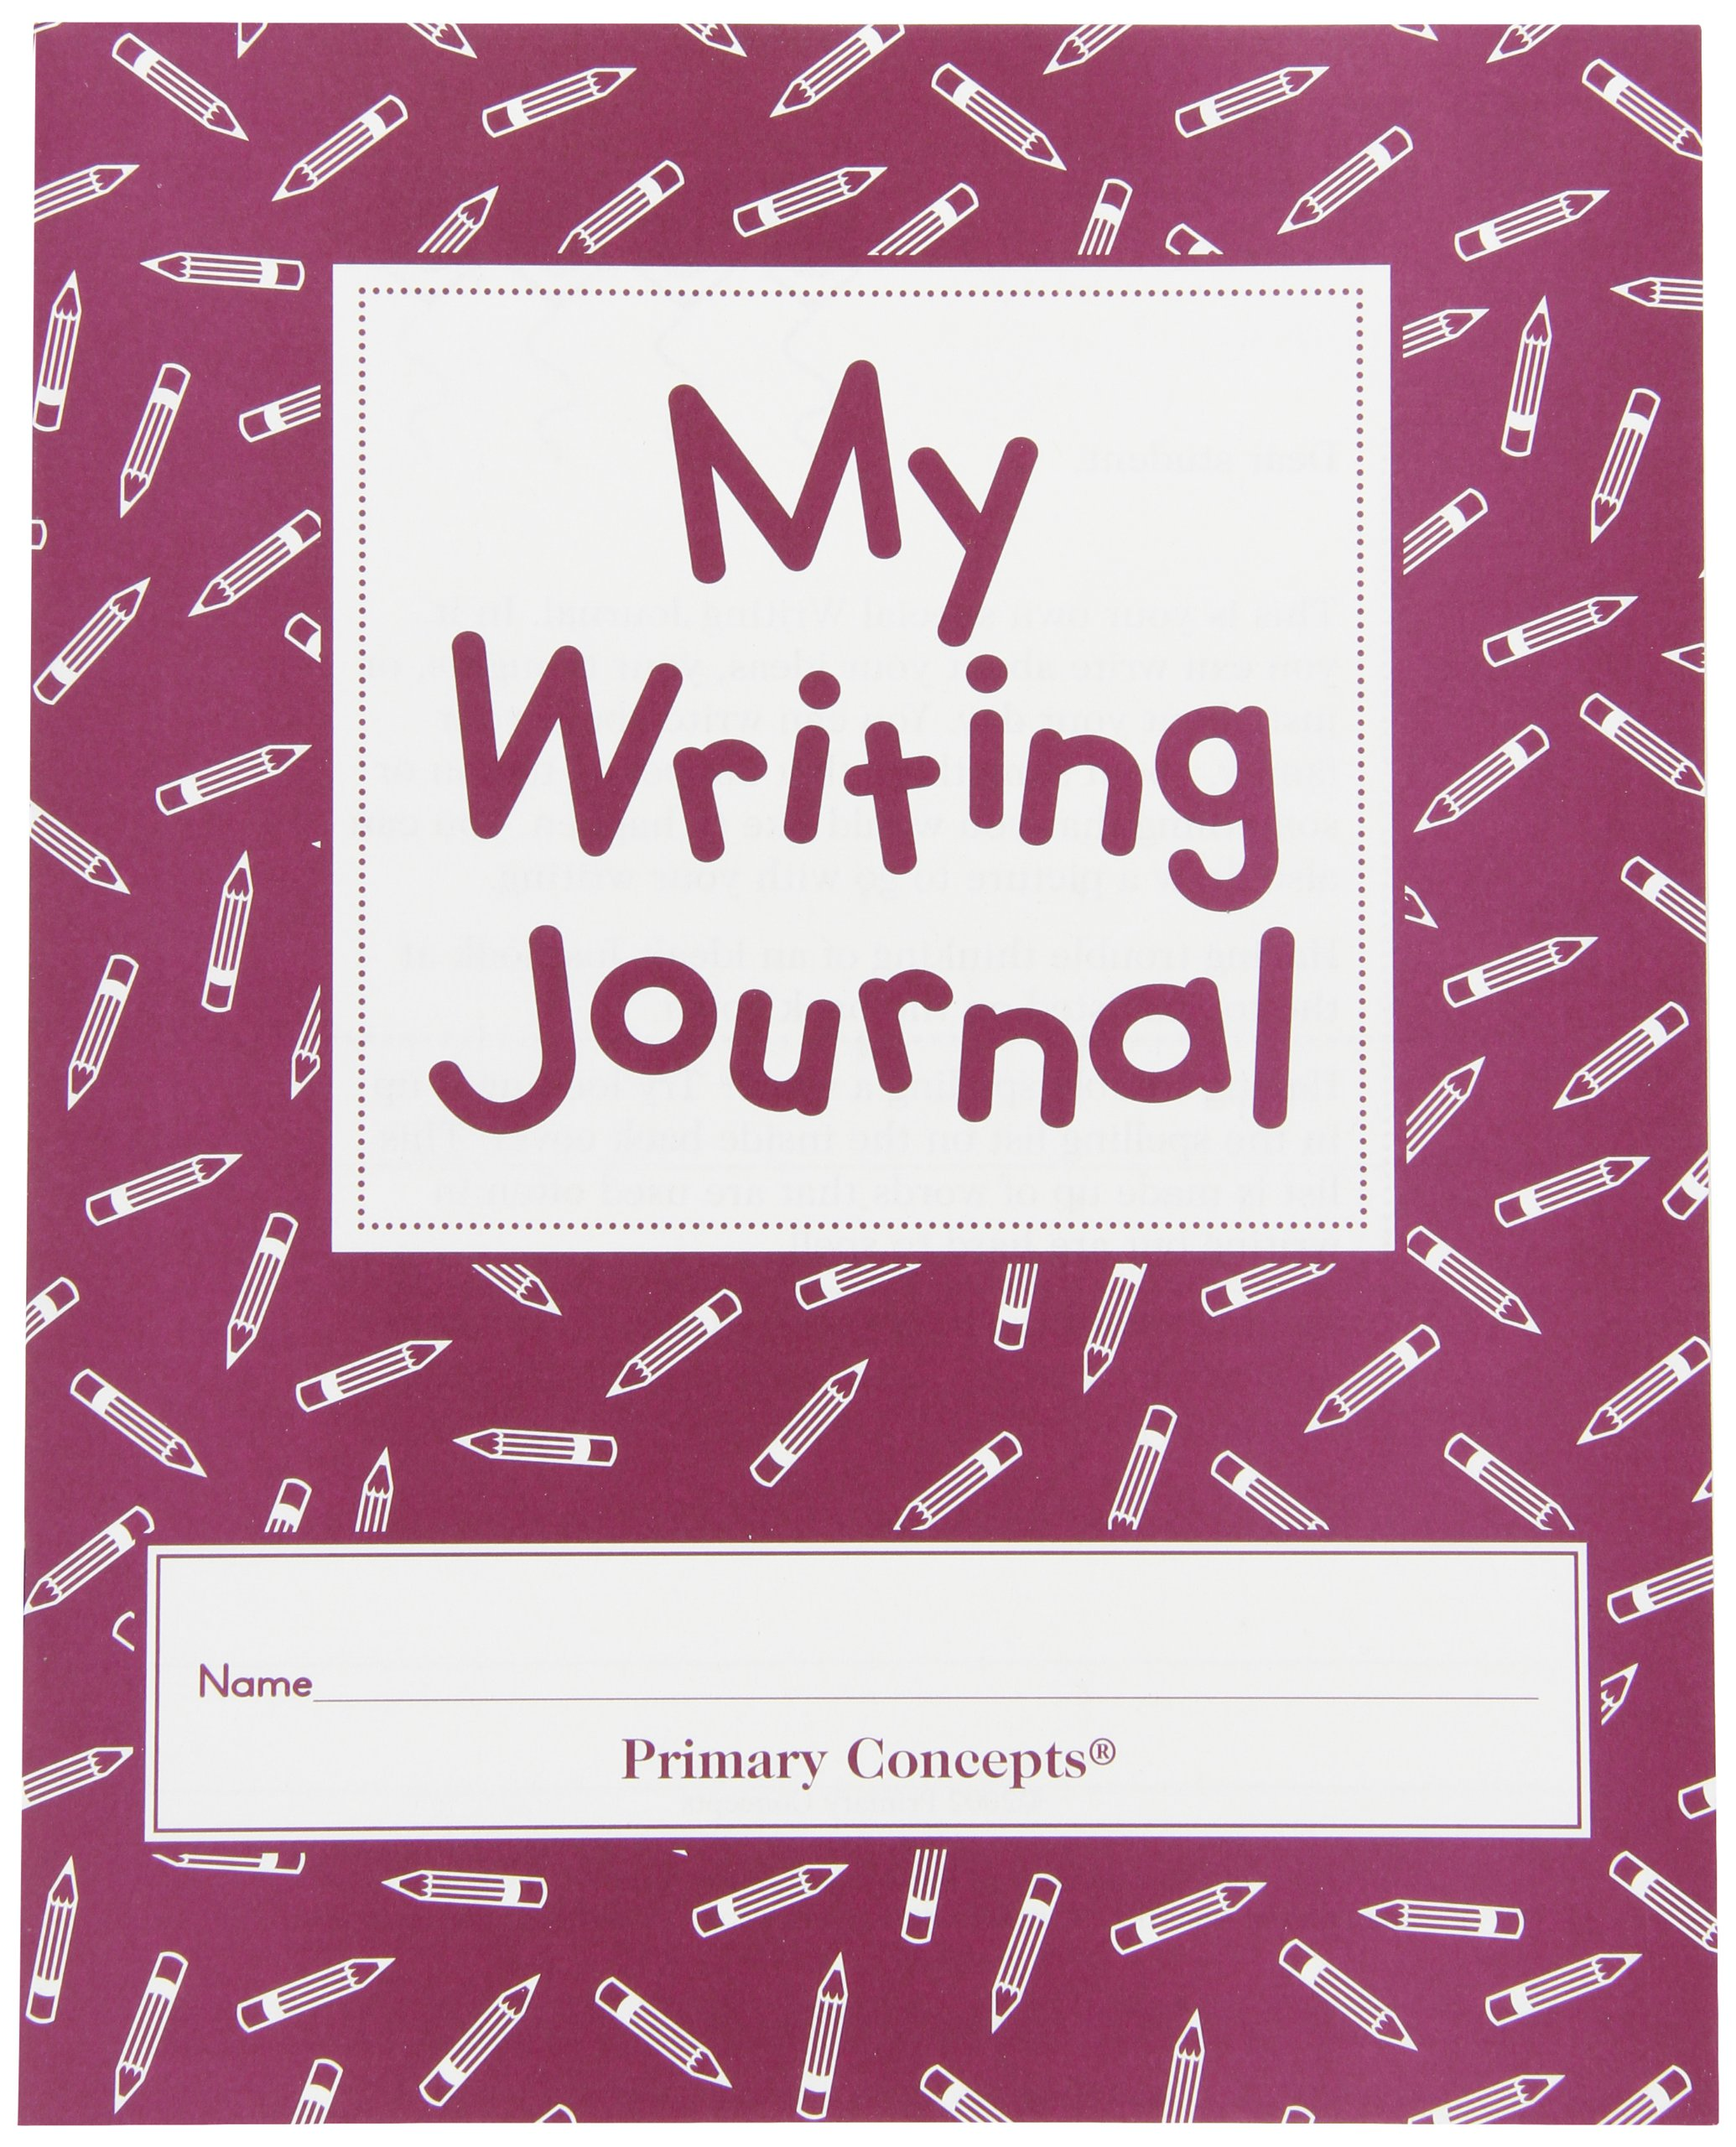 Primary Concepts My Writing Journal - 30 Pages - Set of 20